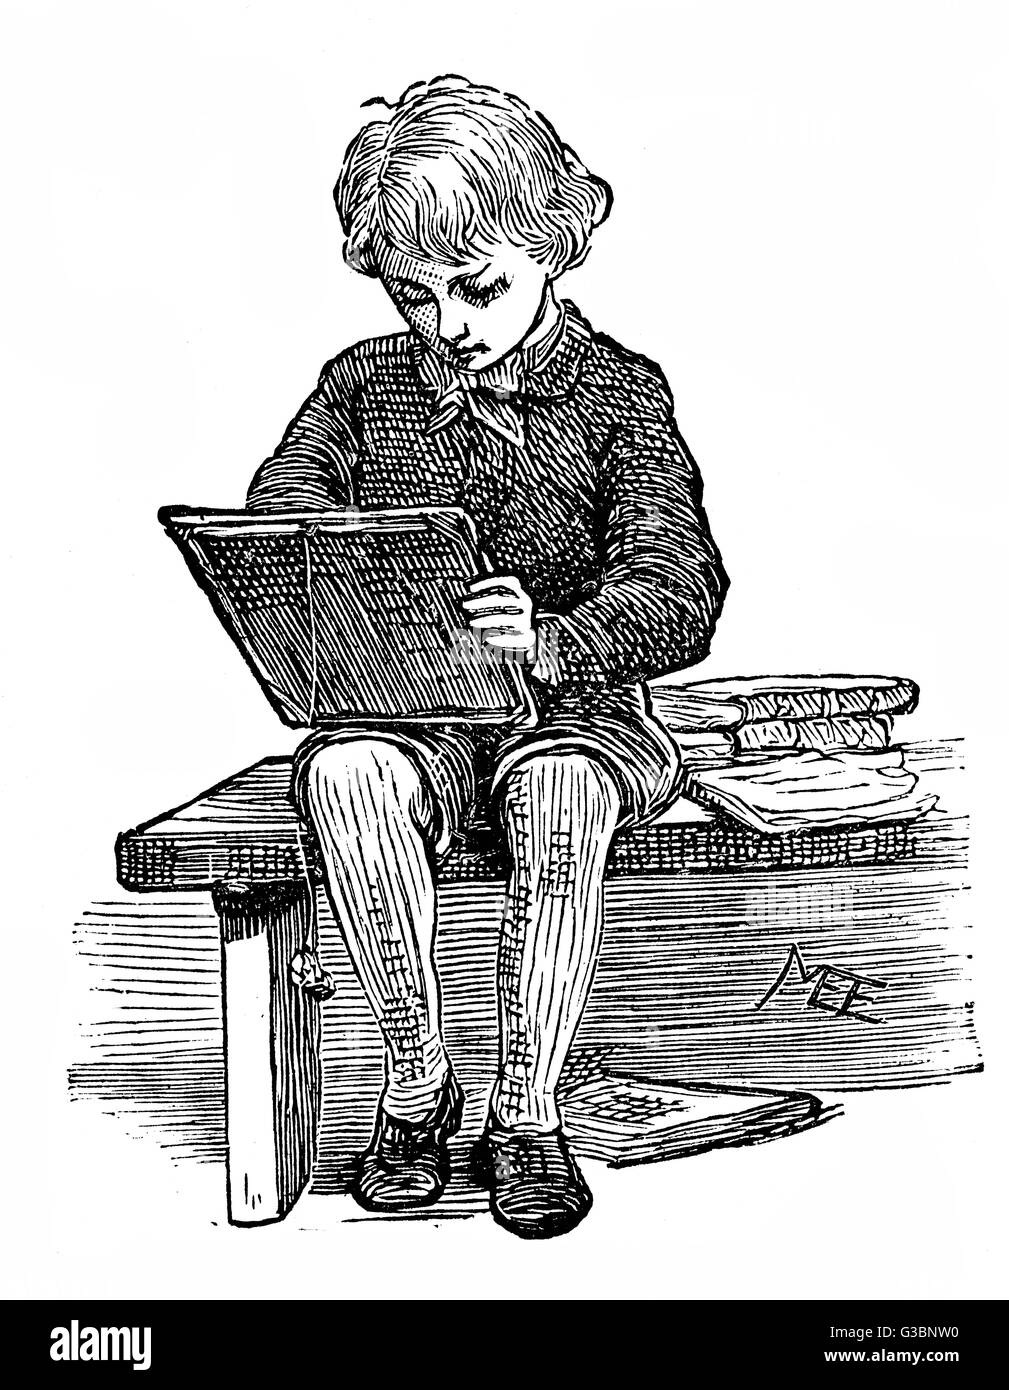 A studious little schoolboy,  sits on a bench surrounded by  books and practices writing on  his slate. A sponge - Stock Image